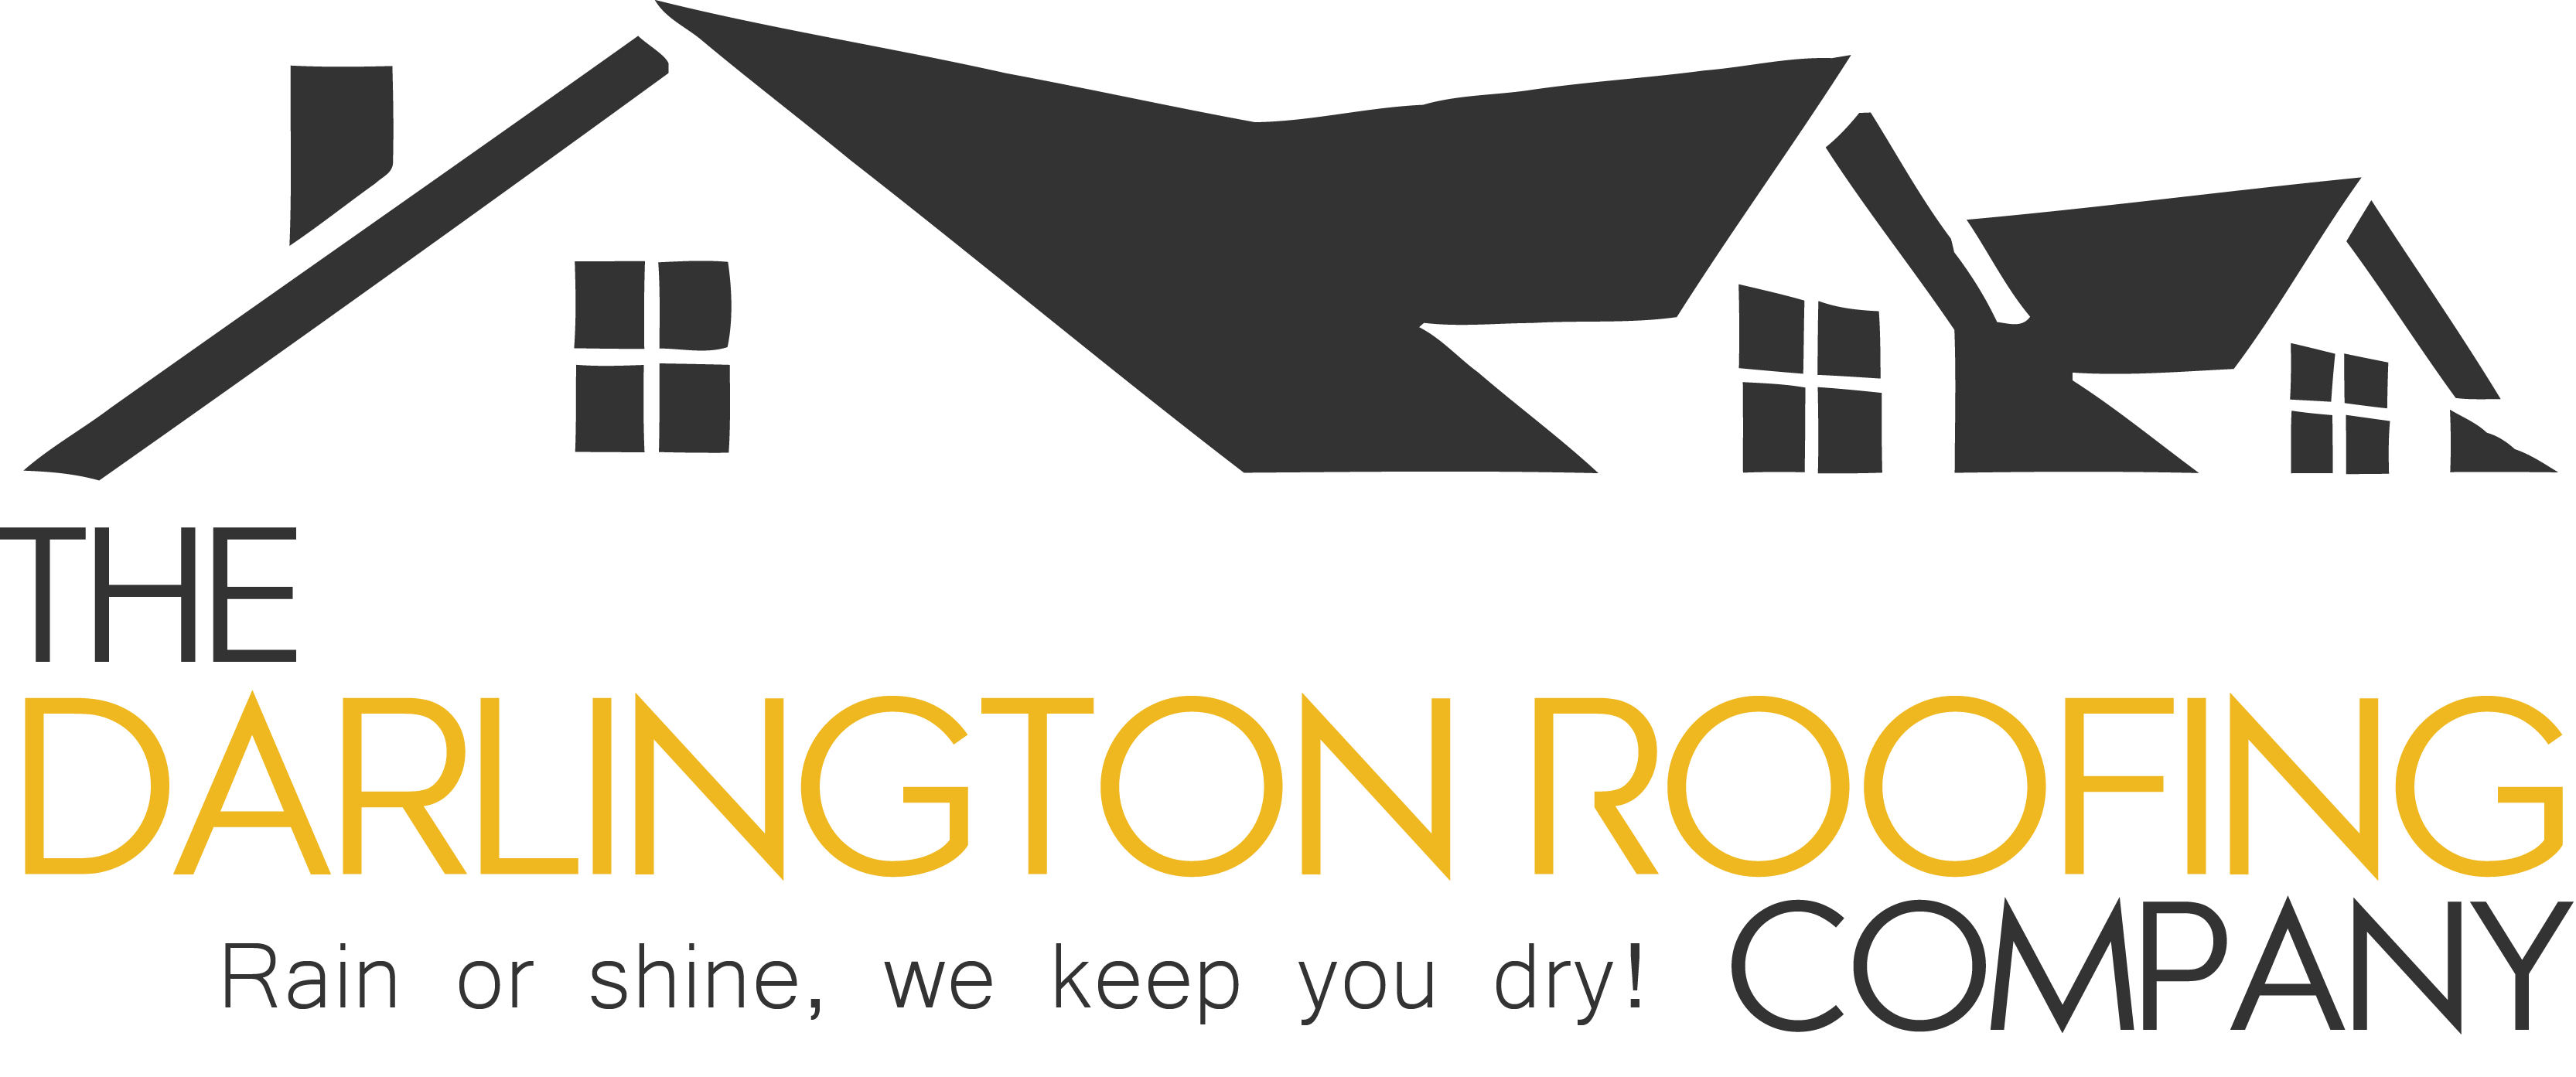 The darlington roofing company. House roof png